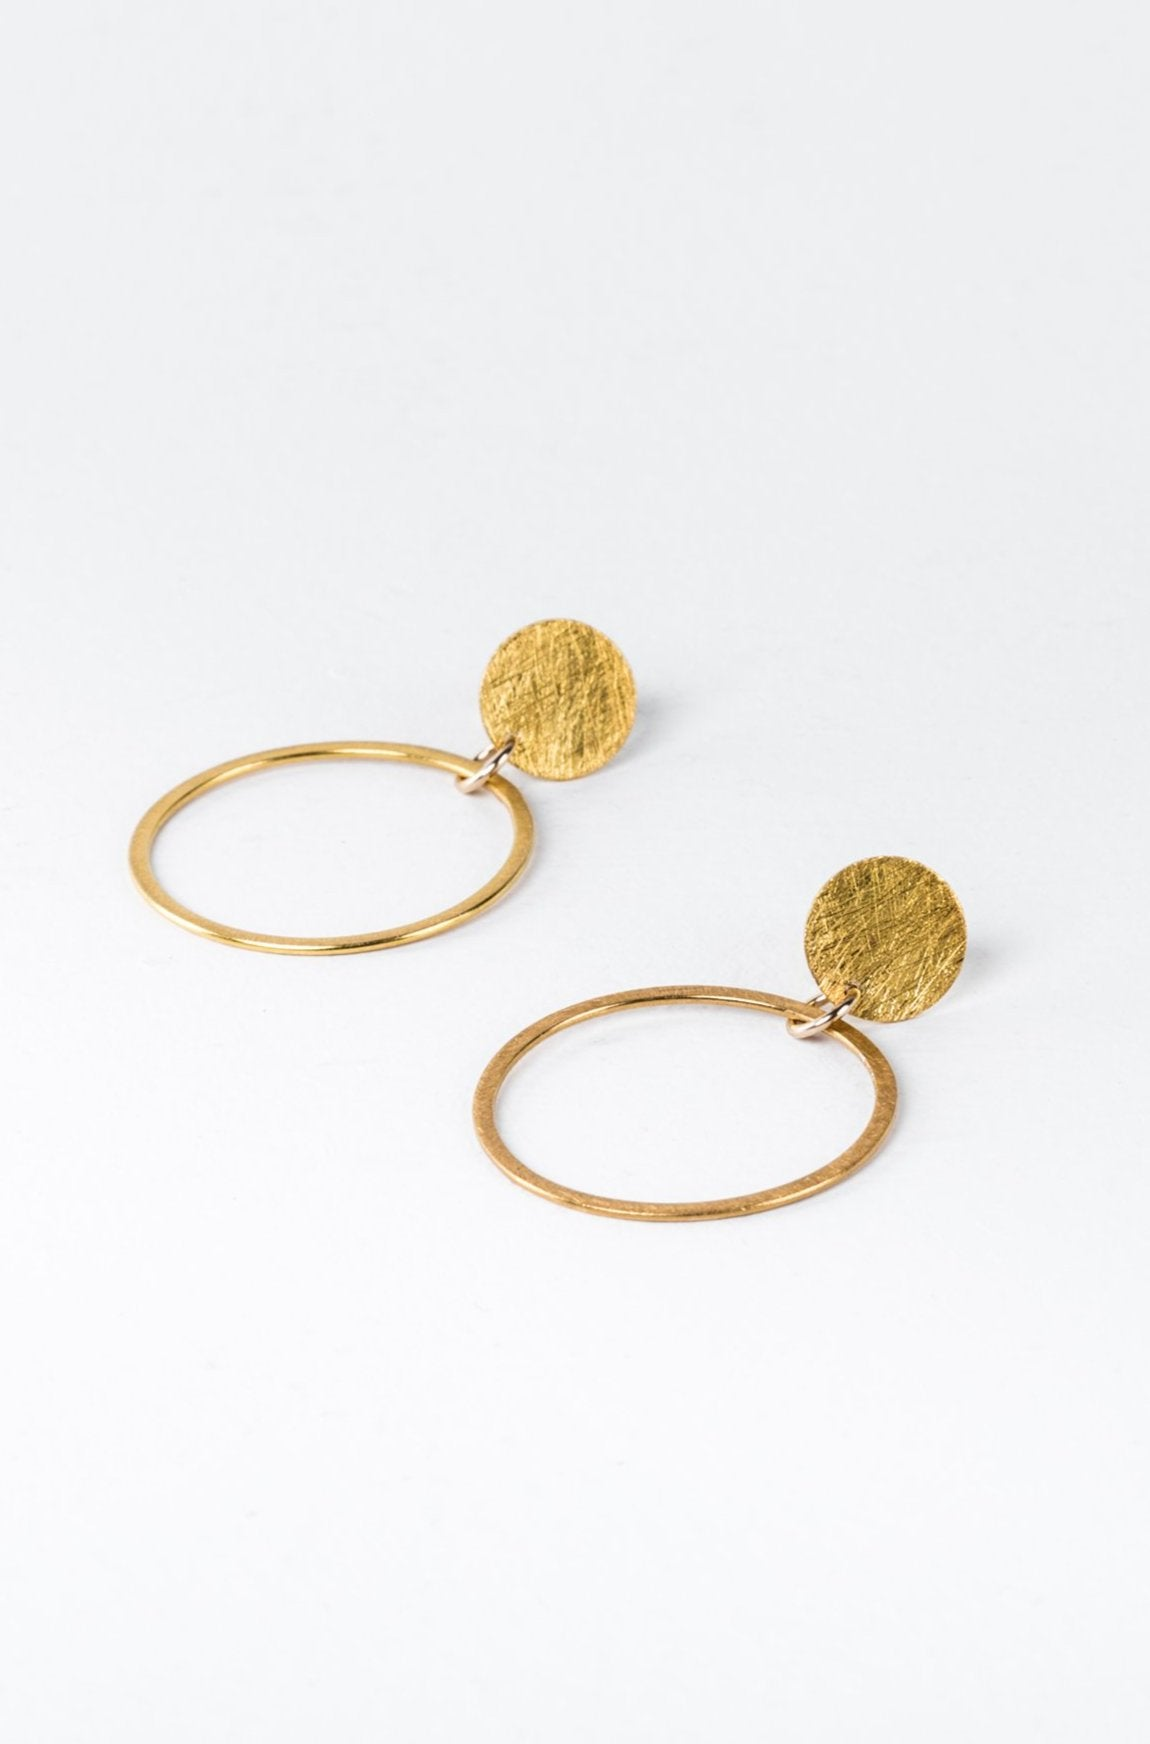 Gold Luna Earrings - Out of stock, pre order for delivery late February